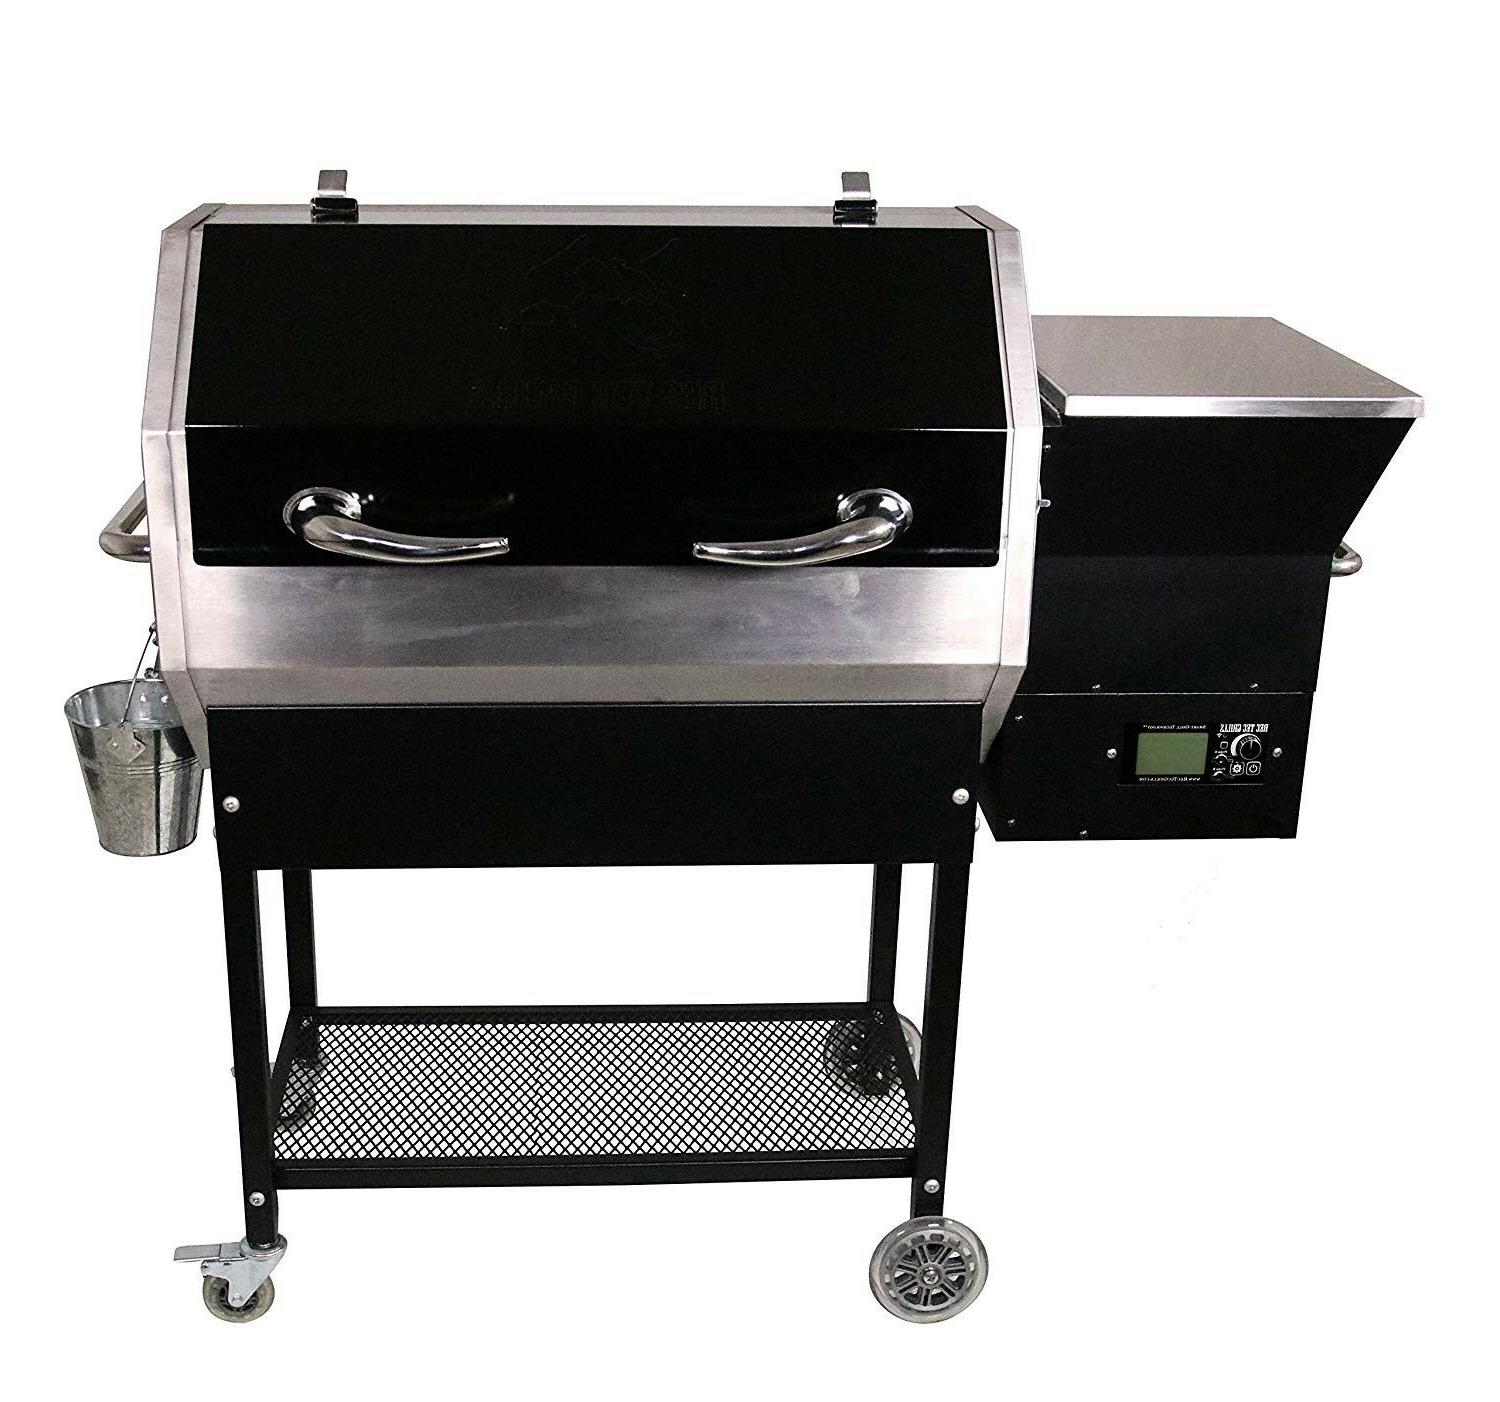 REC TEC Grills RT-590 | Enabled